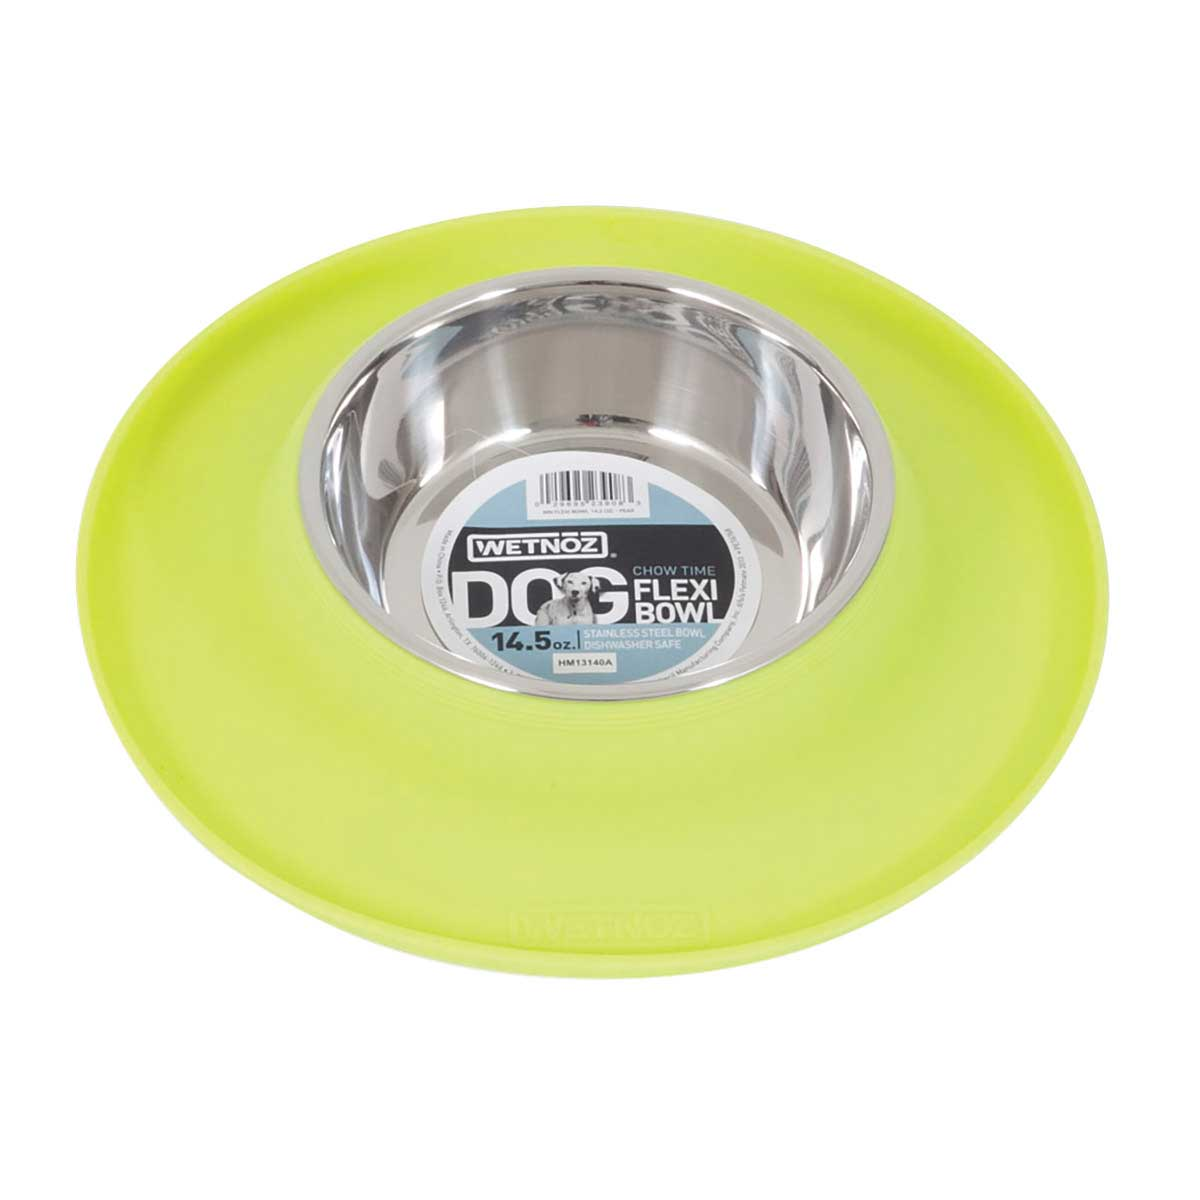 Wetnoz Flexi Bowl 14.5 ounces - Pear Green